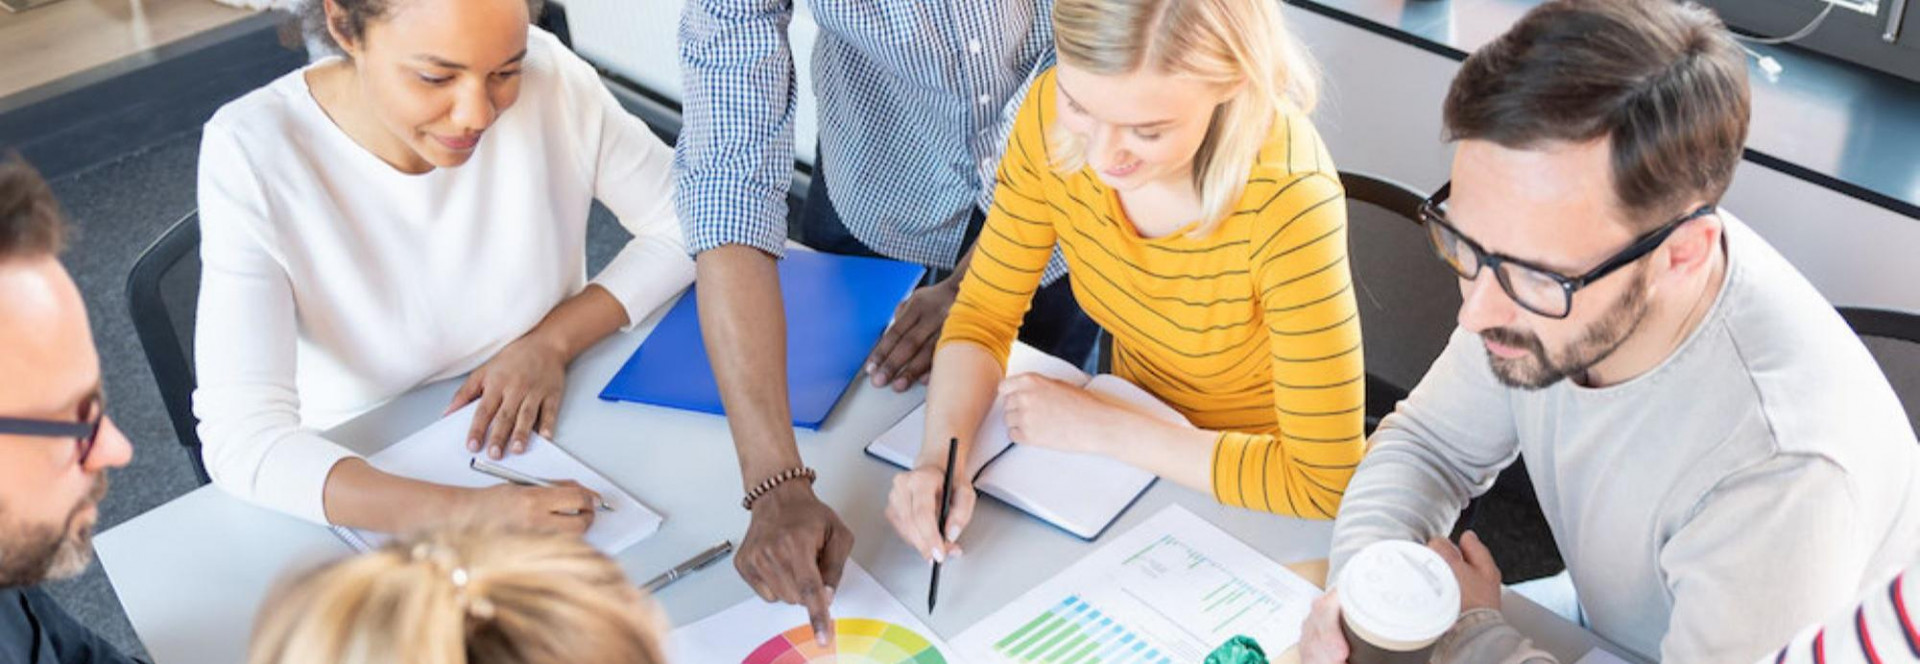 How to Keep Brand Management Customer-Centered